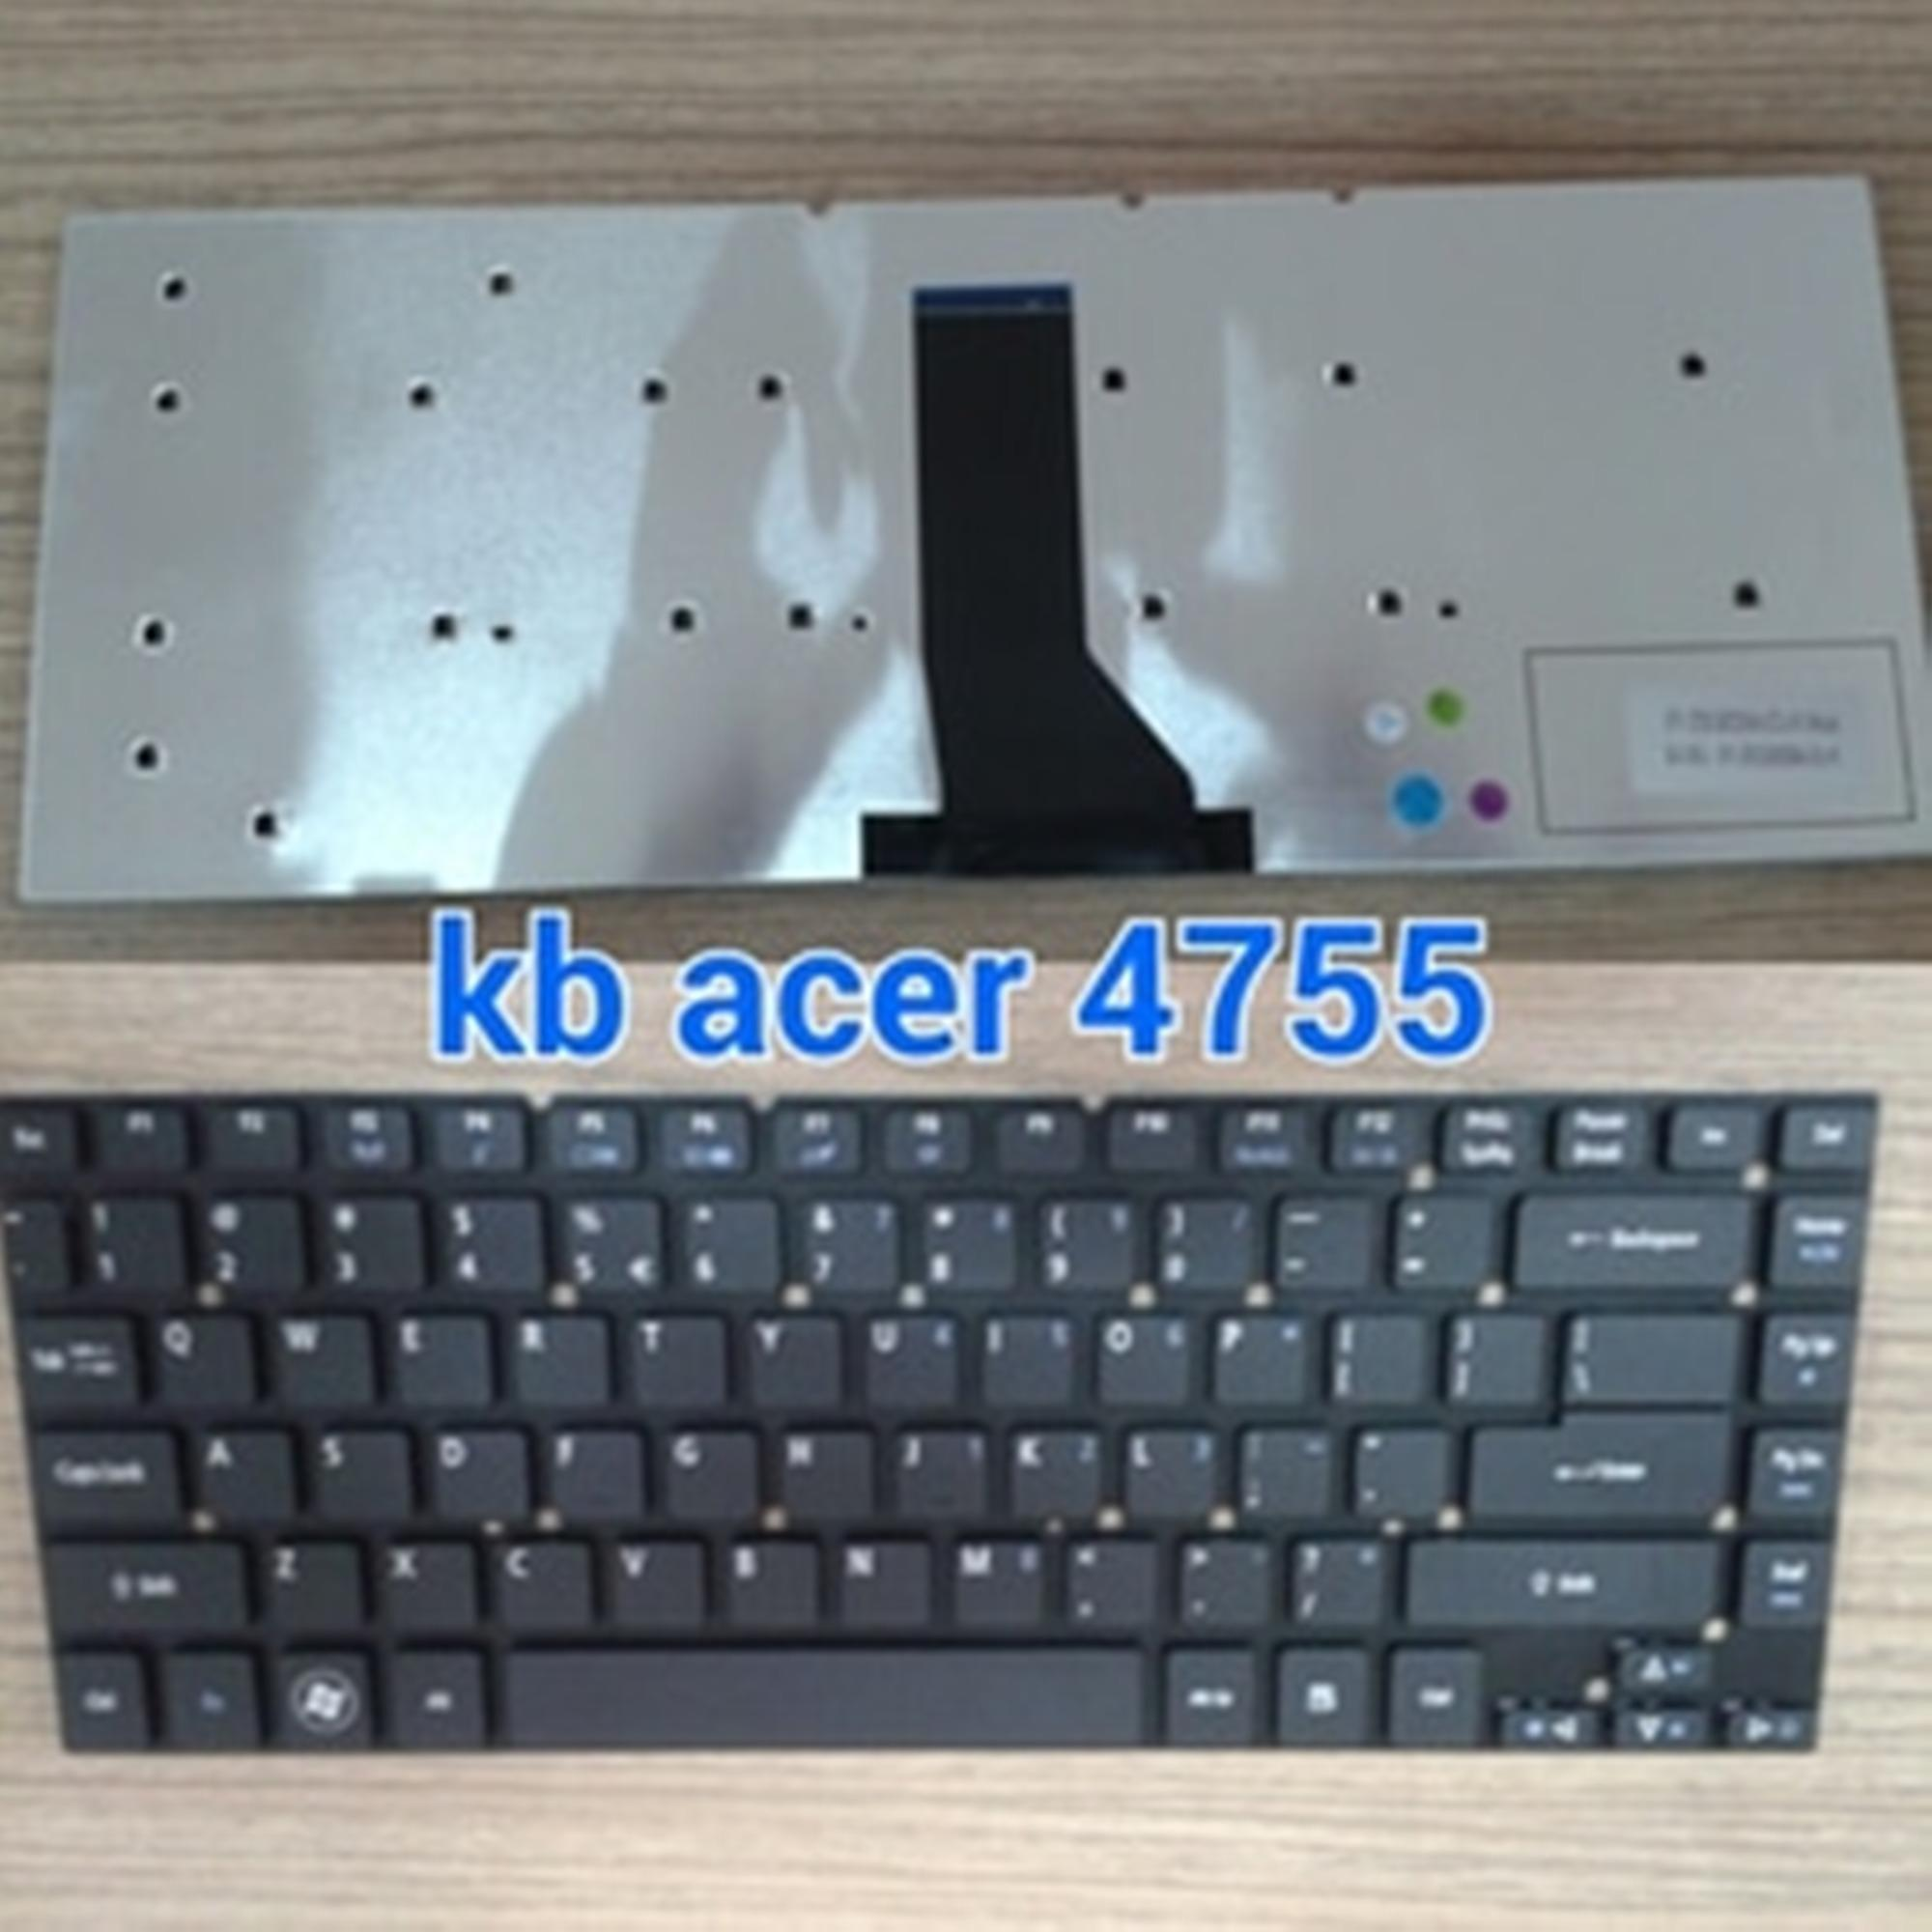 Acer Keyboard Laptop Aspire 4755 Series Hitam Daftar Update Harga E14 Es1 411 E1 410 410g 422 422g Source 4830 V3 471